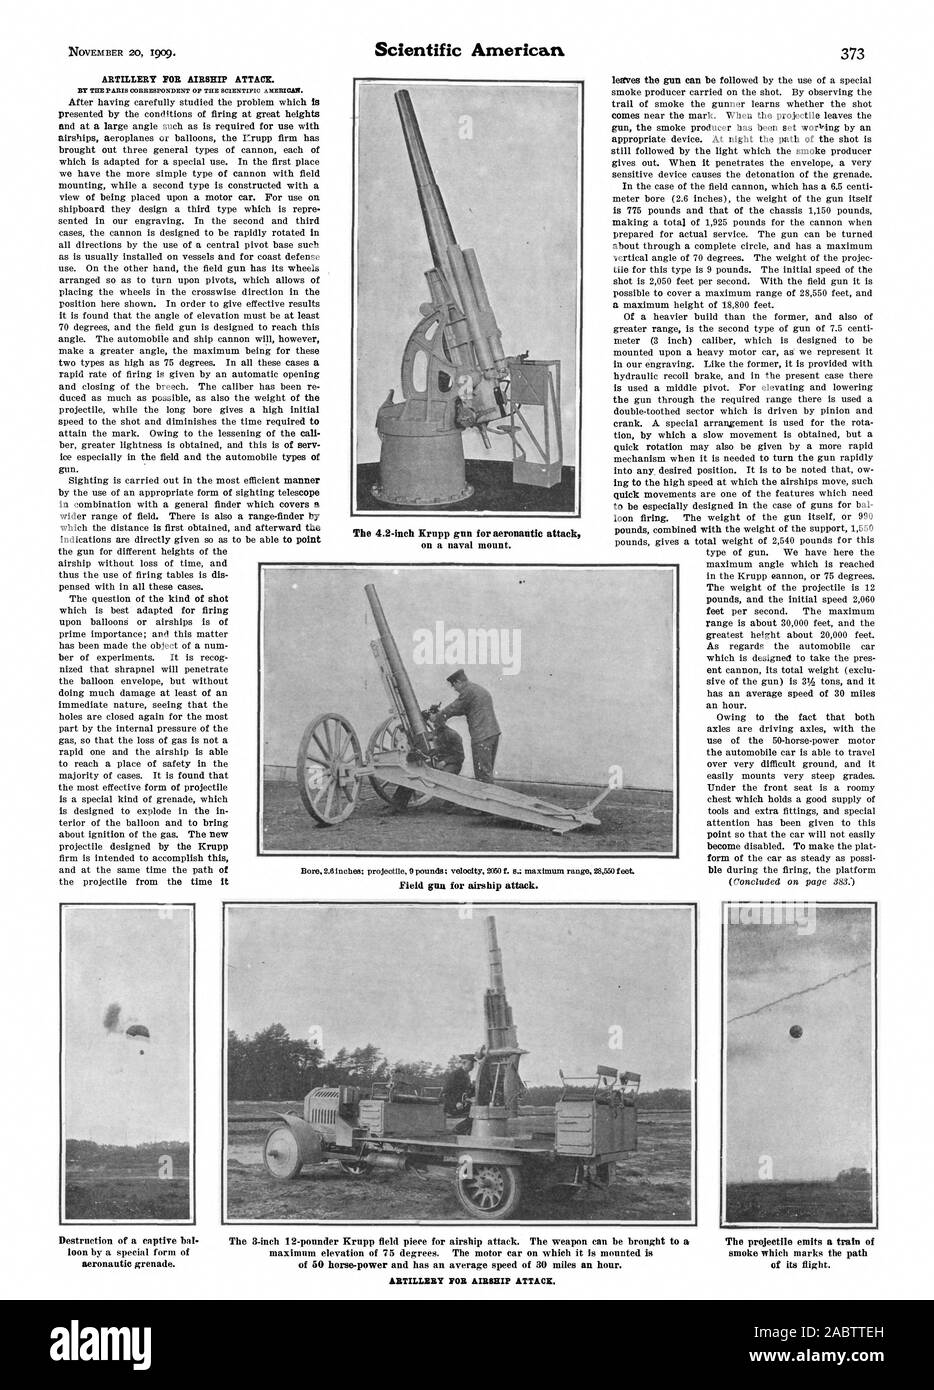 The 4.2-inch Krupp gun for aeronautic attack BY THE PARIS CORRESPONDENT OF THE SCIENTIFIC AMERICAS. gun. which is best adapted for firing an hour. Owing to the fact that both Field gun for airship attack. ARTILLERY FOR AIRSHIP ATTACK., scientific american, -1909-11-20 Stock Photo